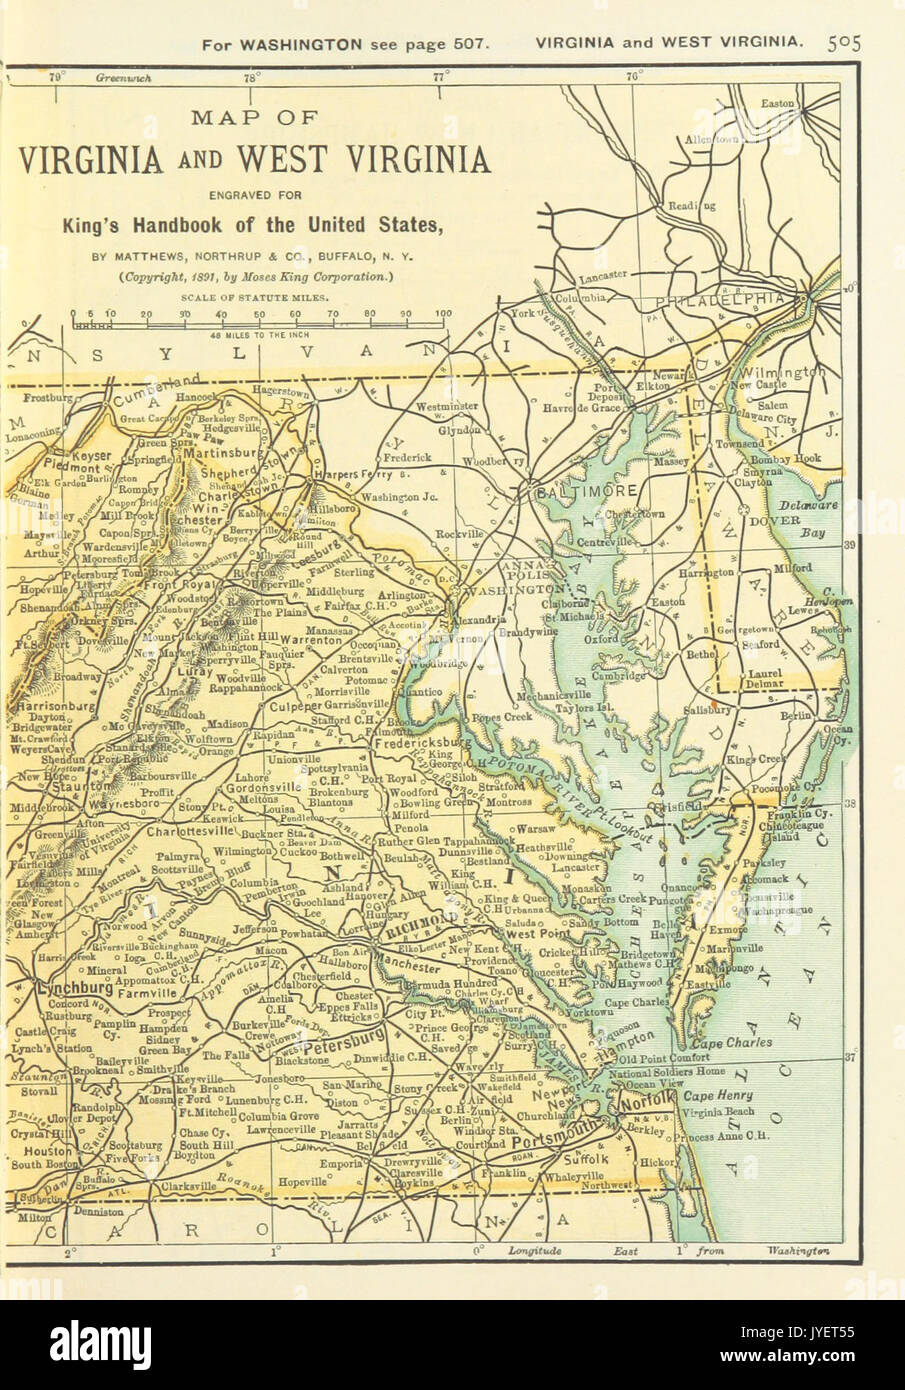 US MAPS(1891) p507 MAP OF VIRGINIA AND WEST VIRGINIA (r ...